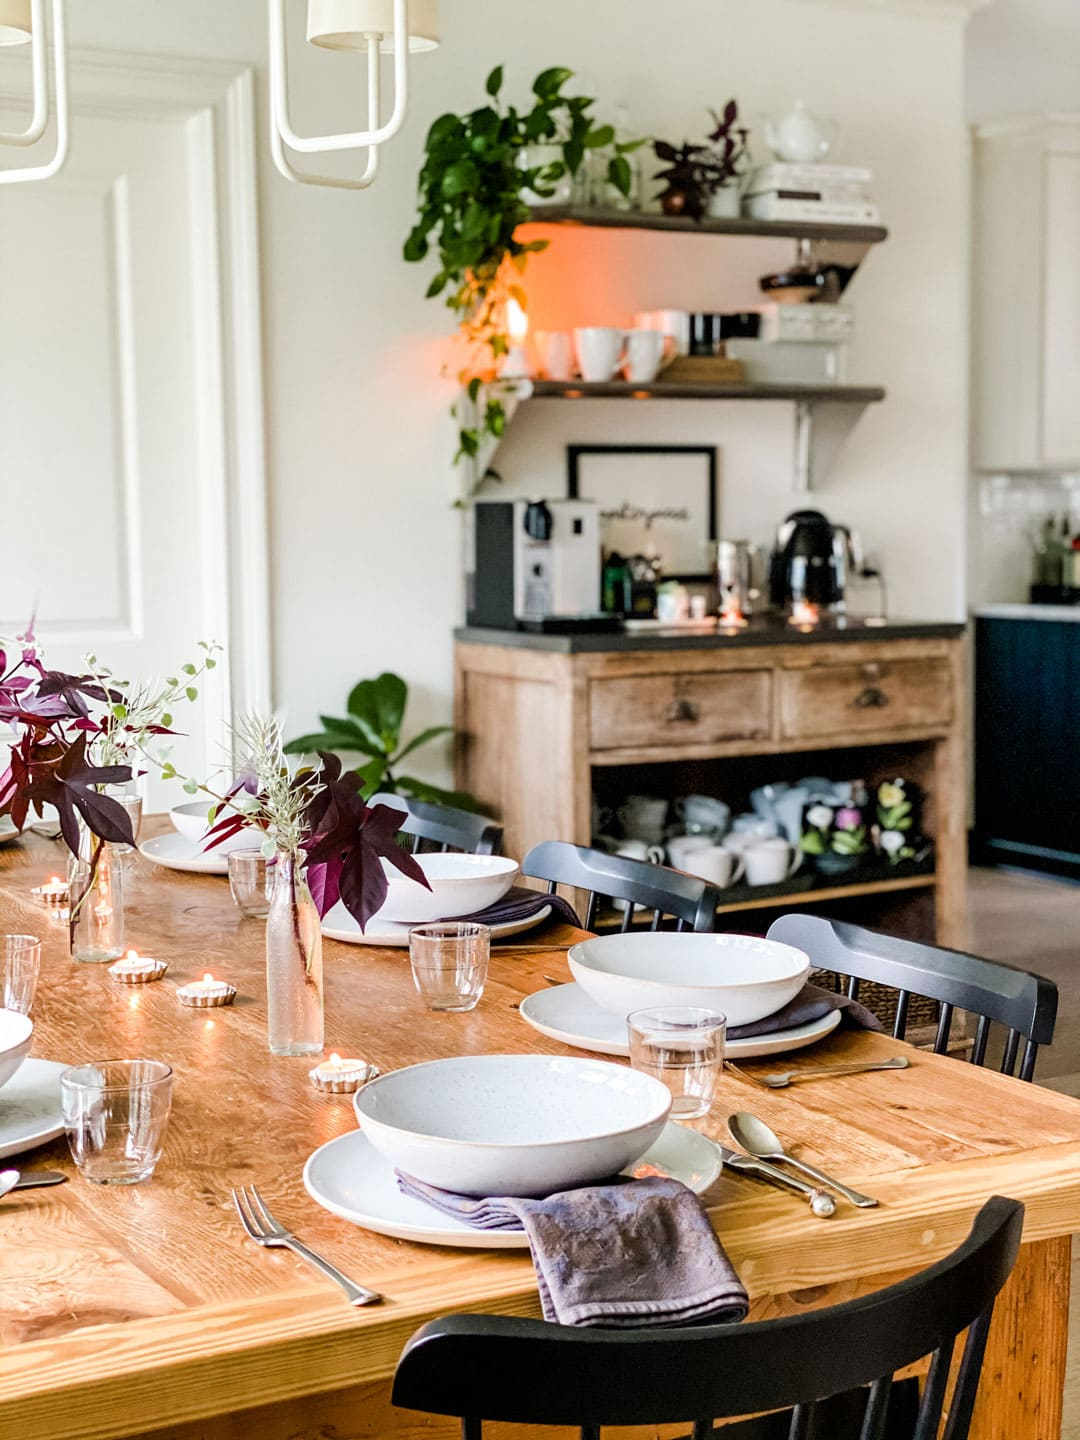 Lifestyle blogger Annie Diamond shares her simple dining room